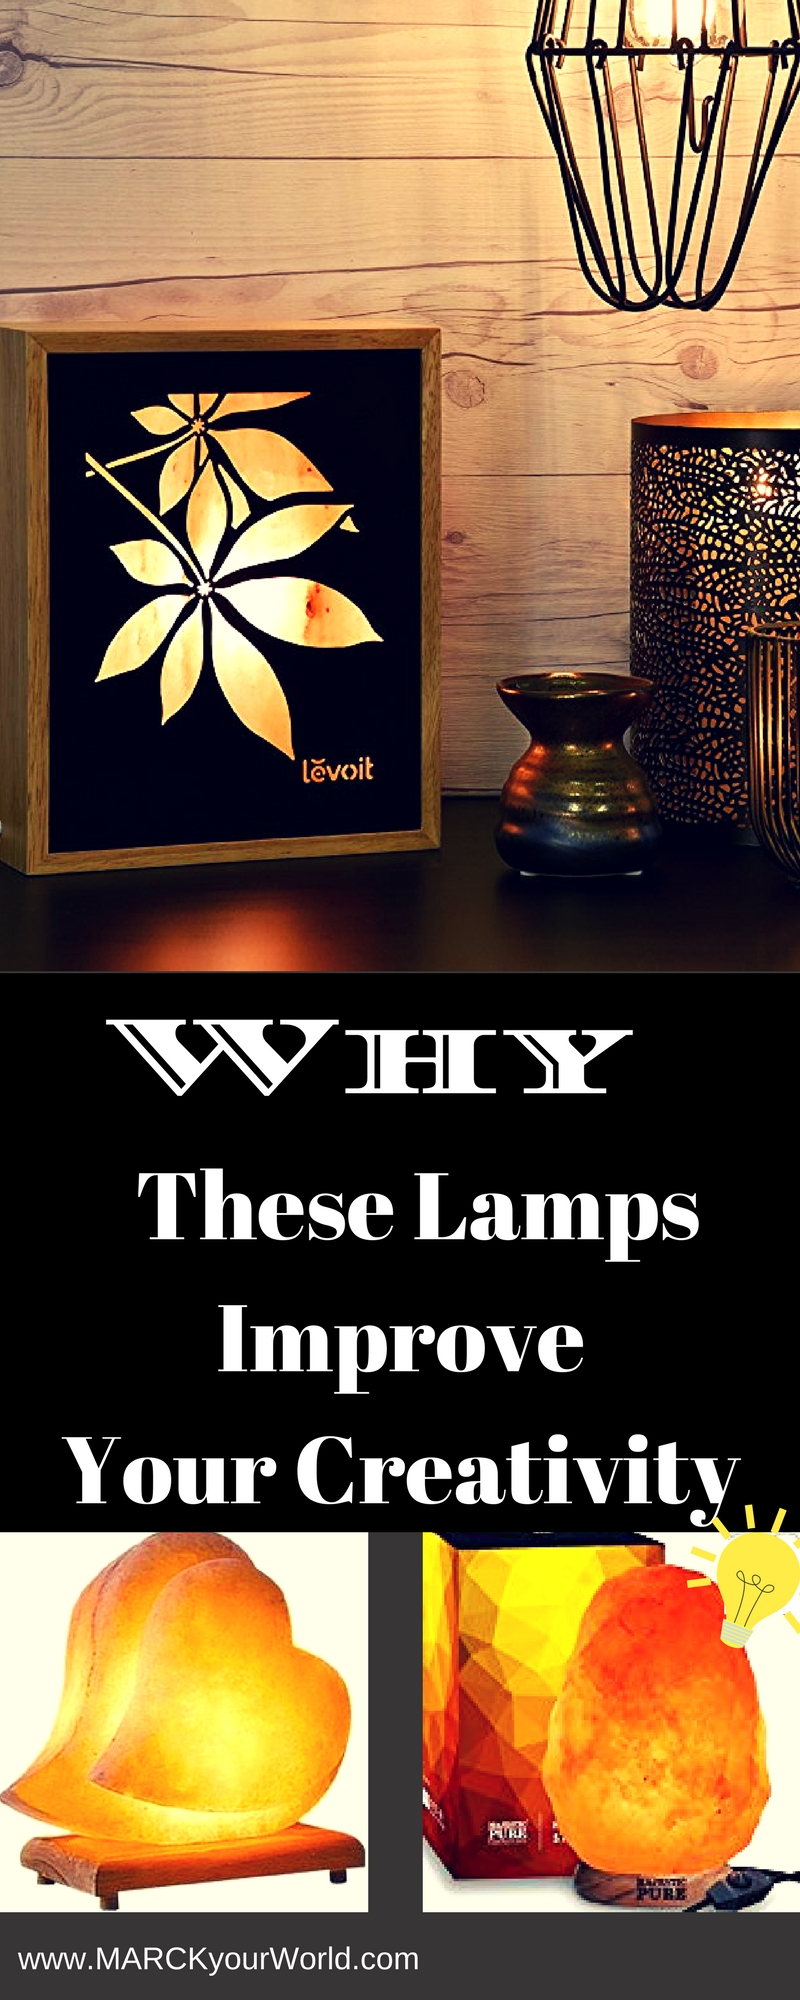 Why These Lamps Improve Your Creativity